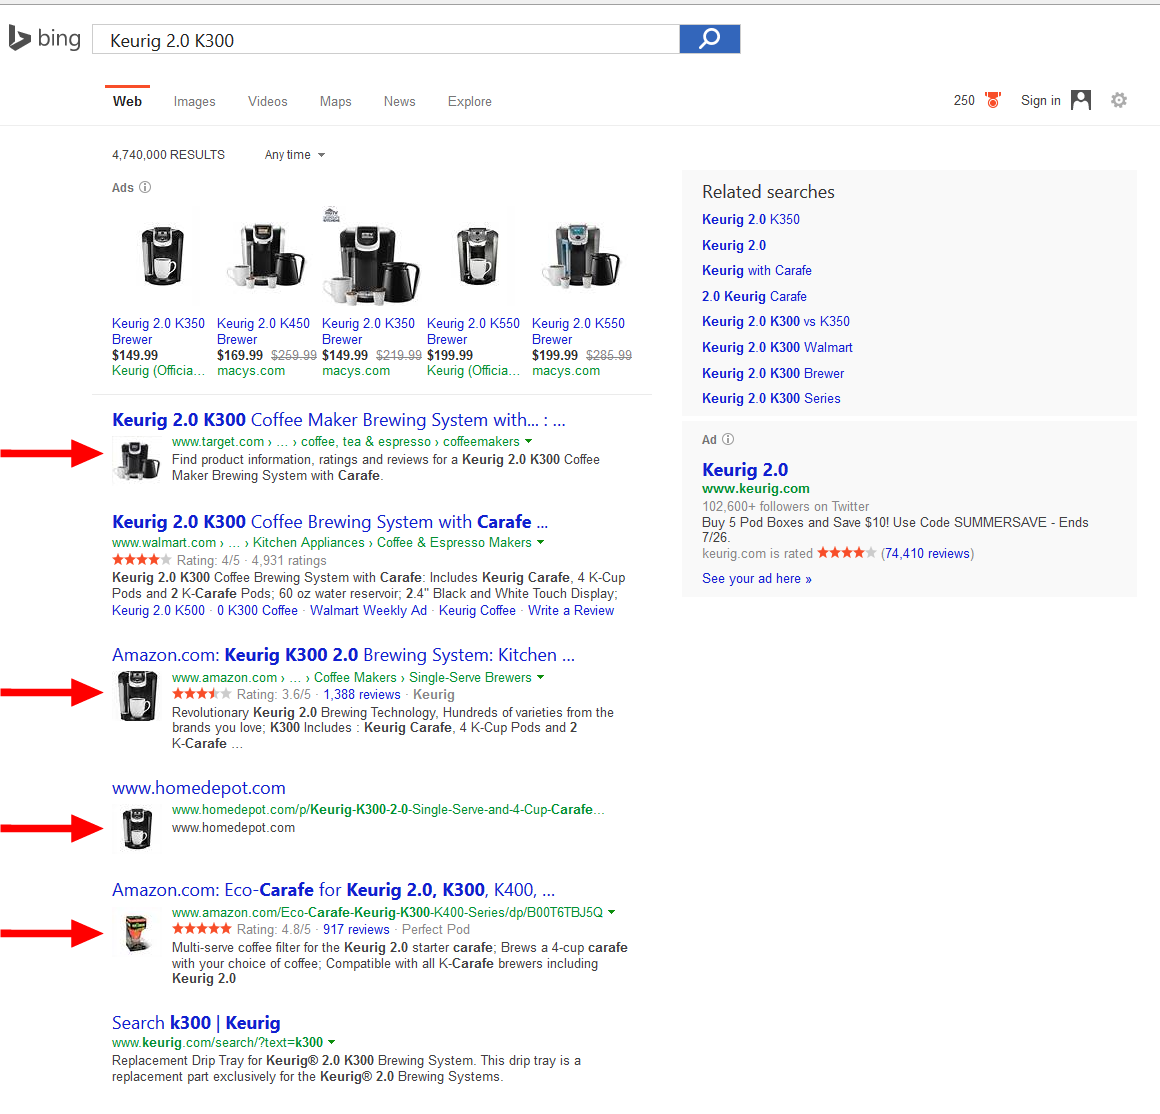 bing showing product thumbnails serps 1a